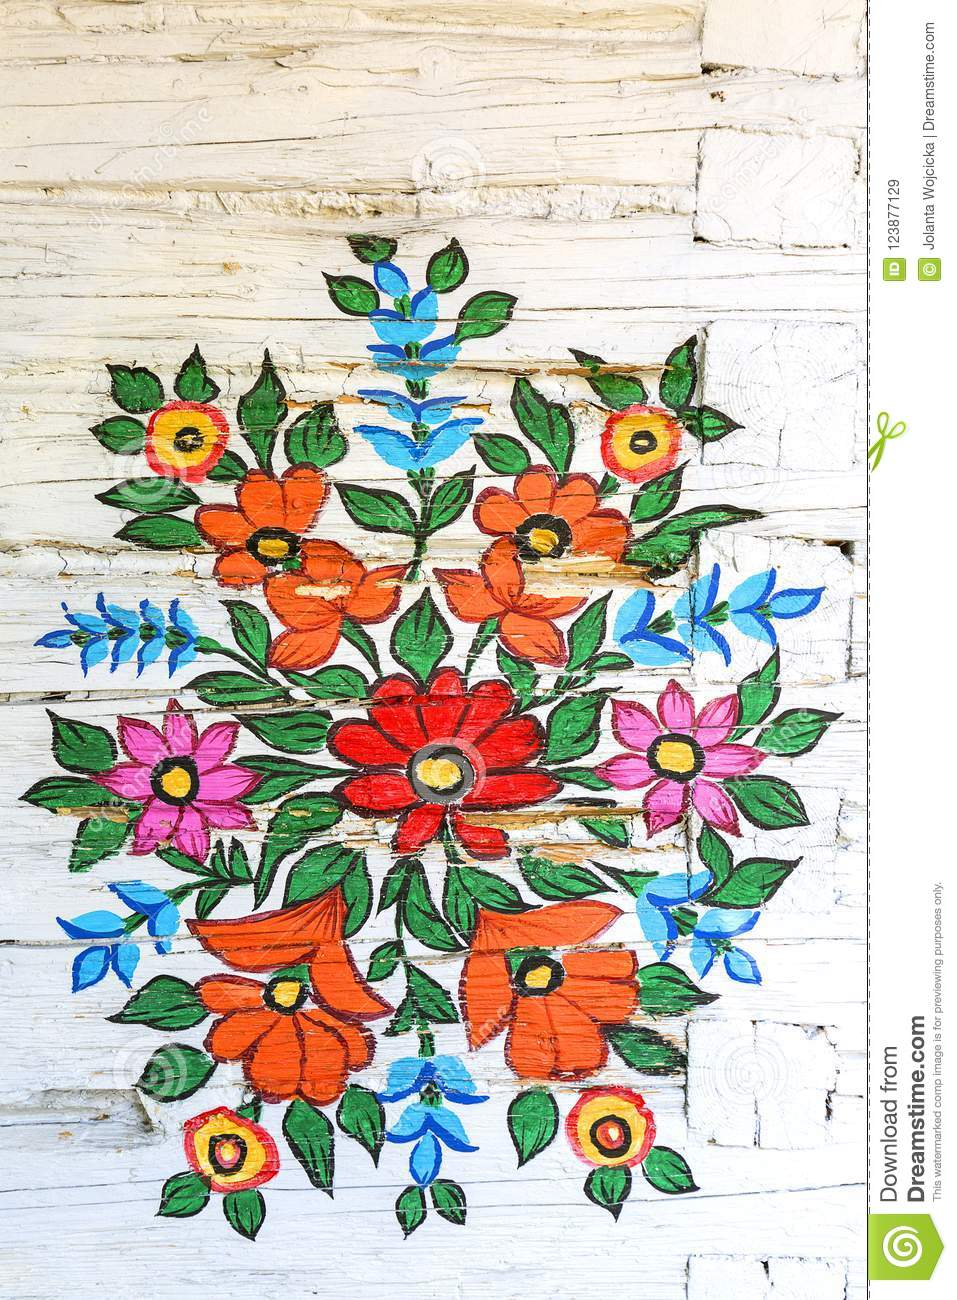 Painted beautiful floral pattern on the facade of an old house, Zalipie, Poland.